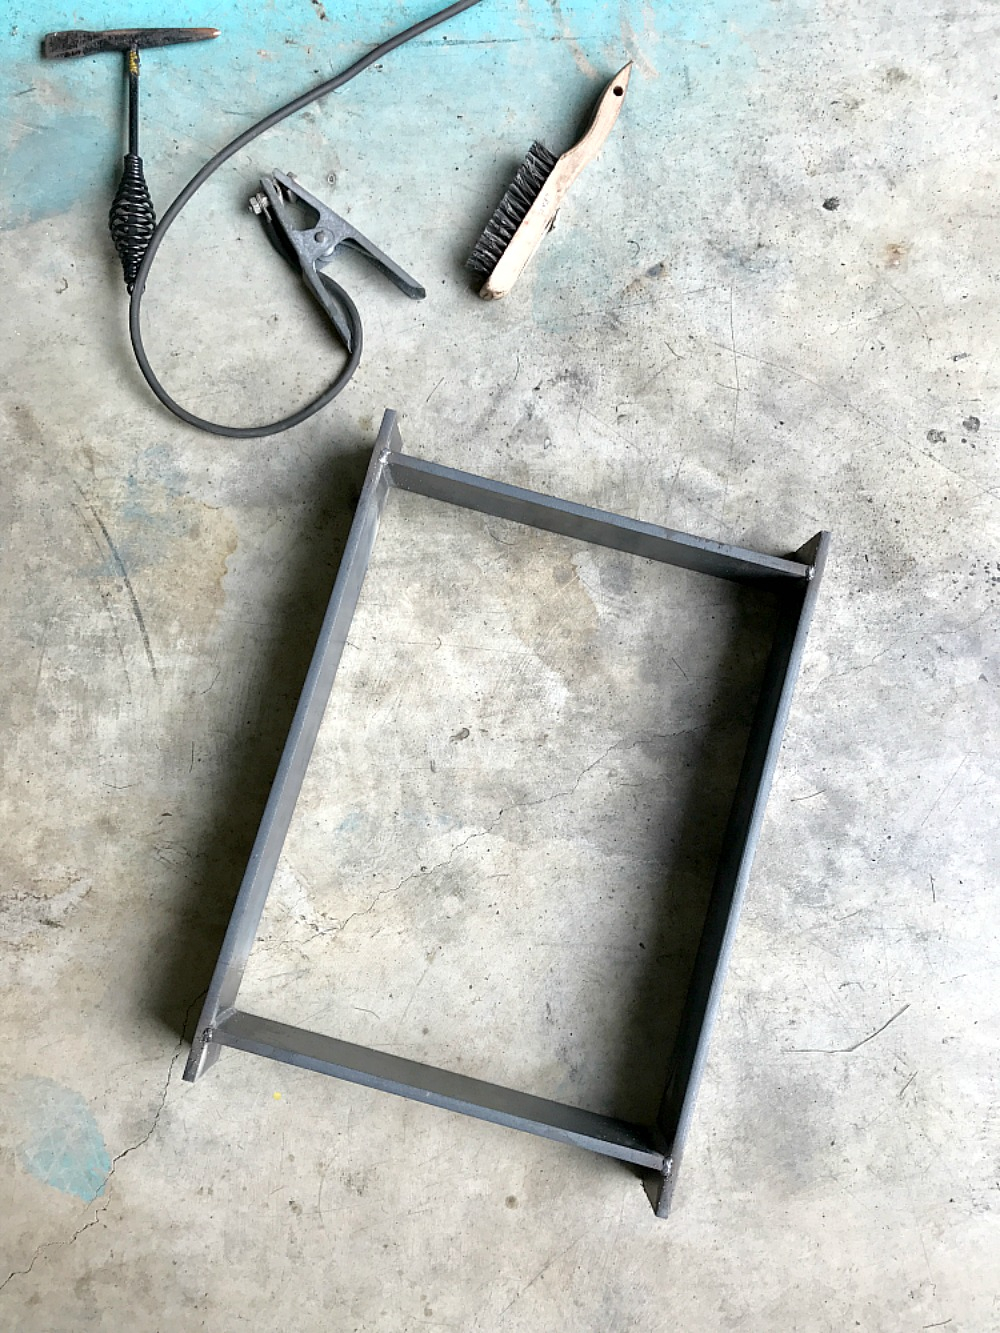 How to Weld Bench Legs